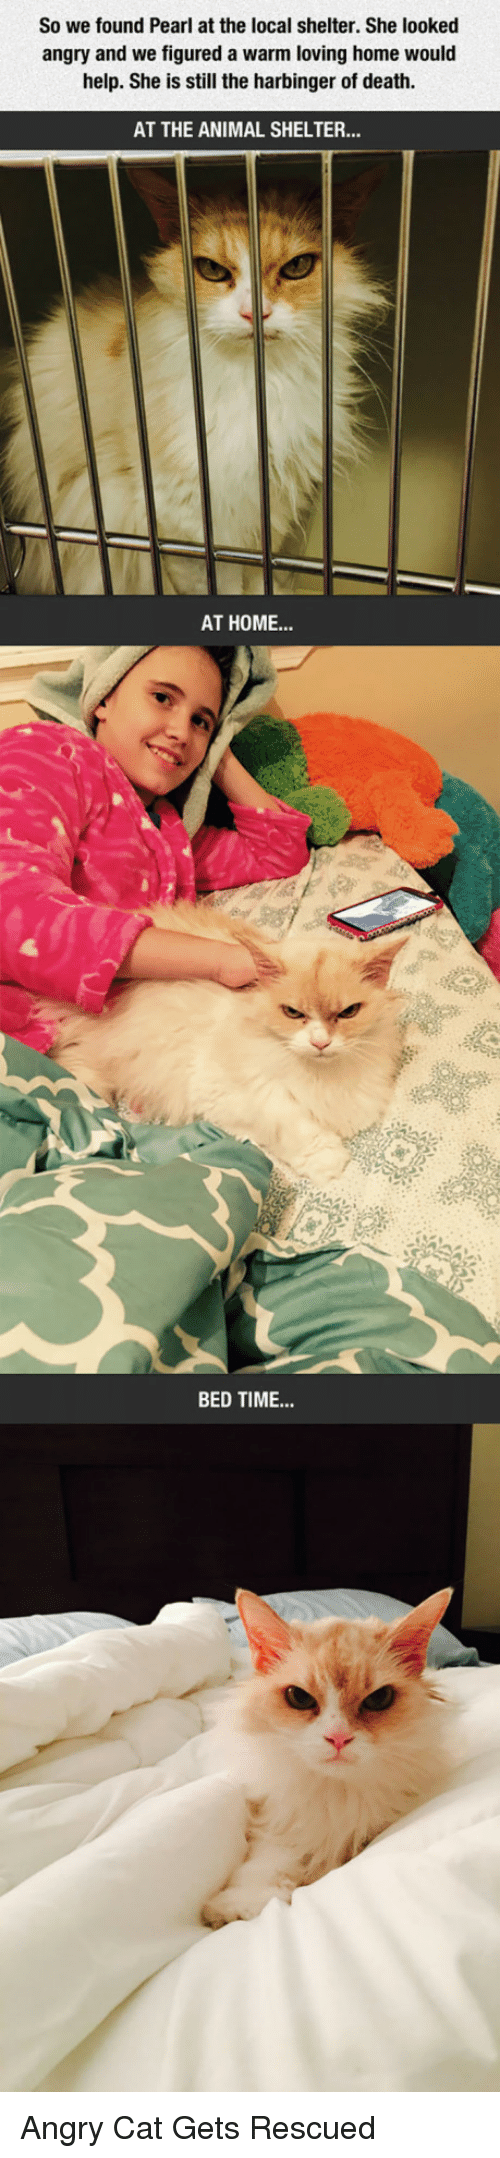 Angry Cat: So we found Pearl at the local shelter. She looked  angry and we figured a warm loving home would  help. She is still the harbinger of death.  AT THE ANIMAL SHELTER.  AT HOME...  BED TIME <p>Angry Cat Gets Rescued</p>